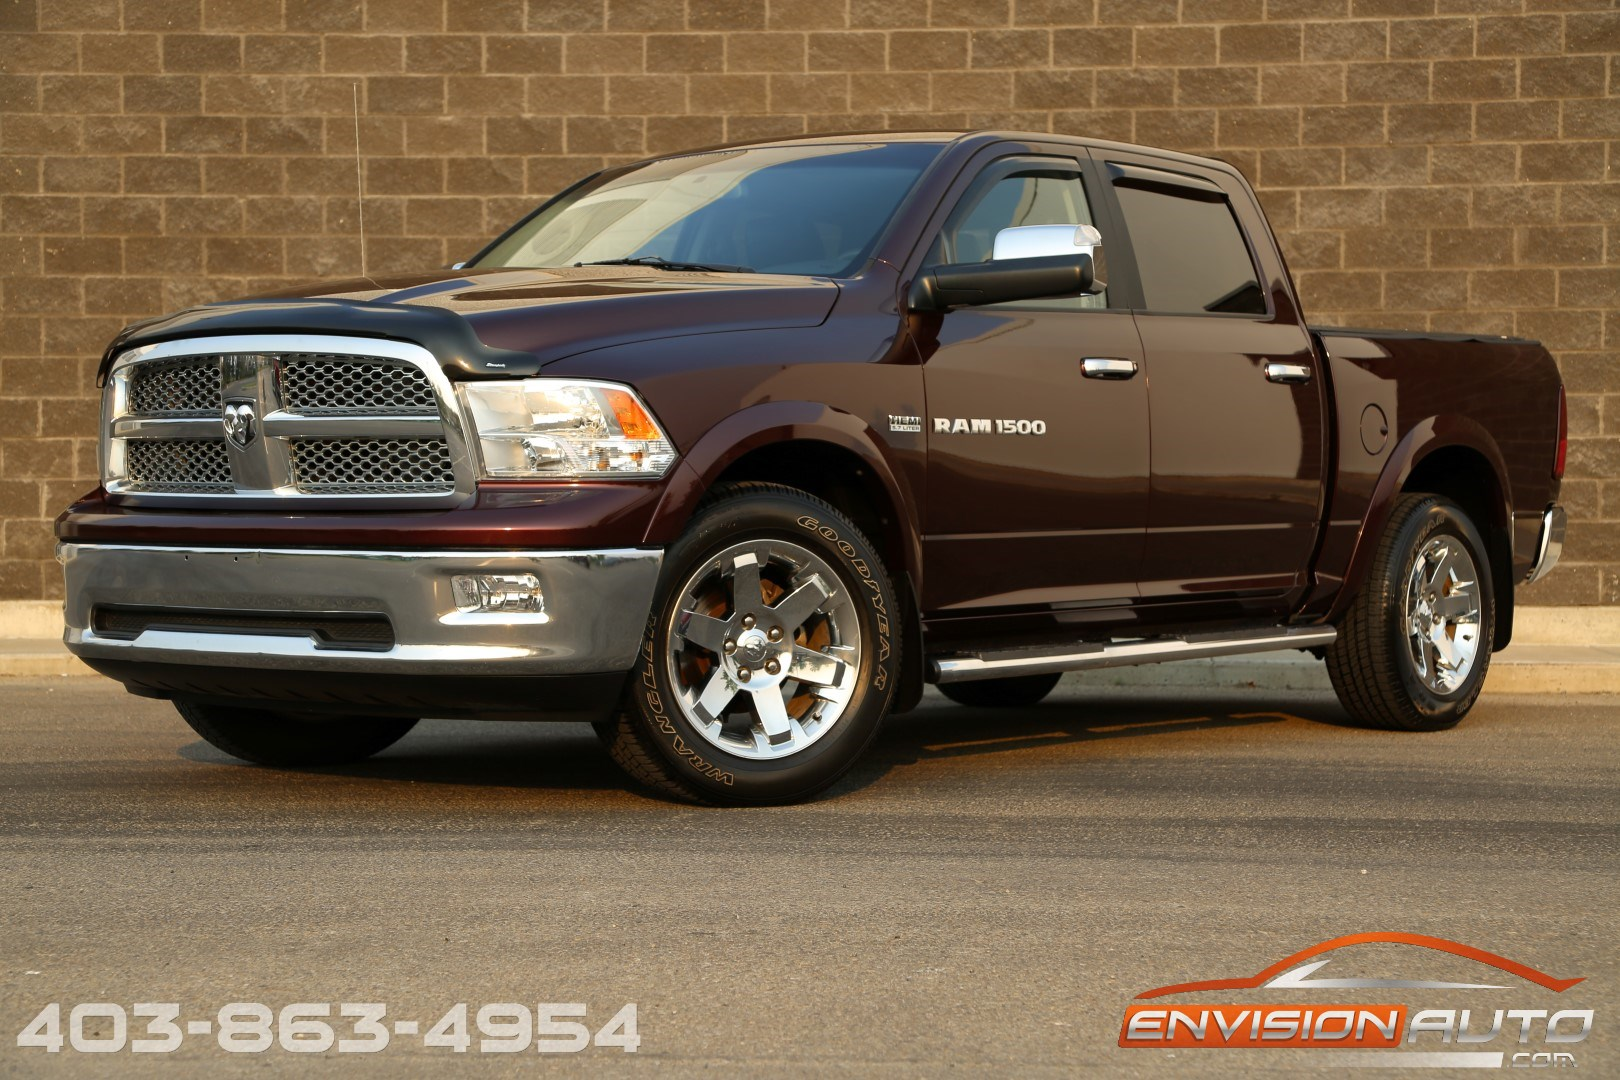 2012 dodge ram 1500 crew cab laramie 4 4 envision auto calgary highline luxury sports cars - Crew cab dodge ram ...